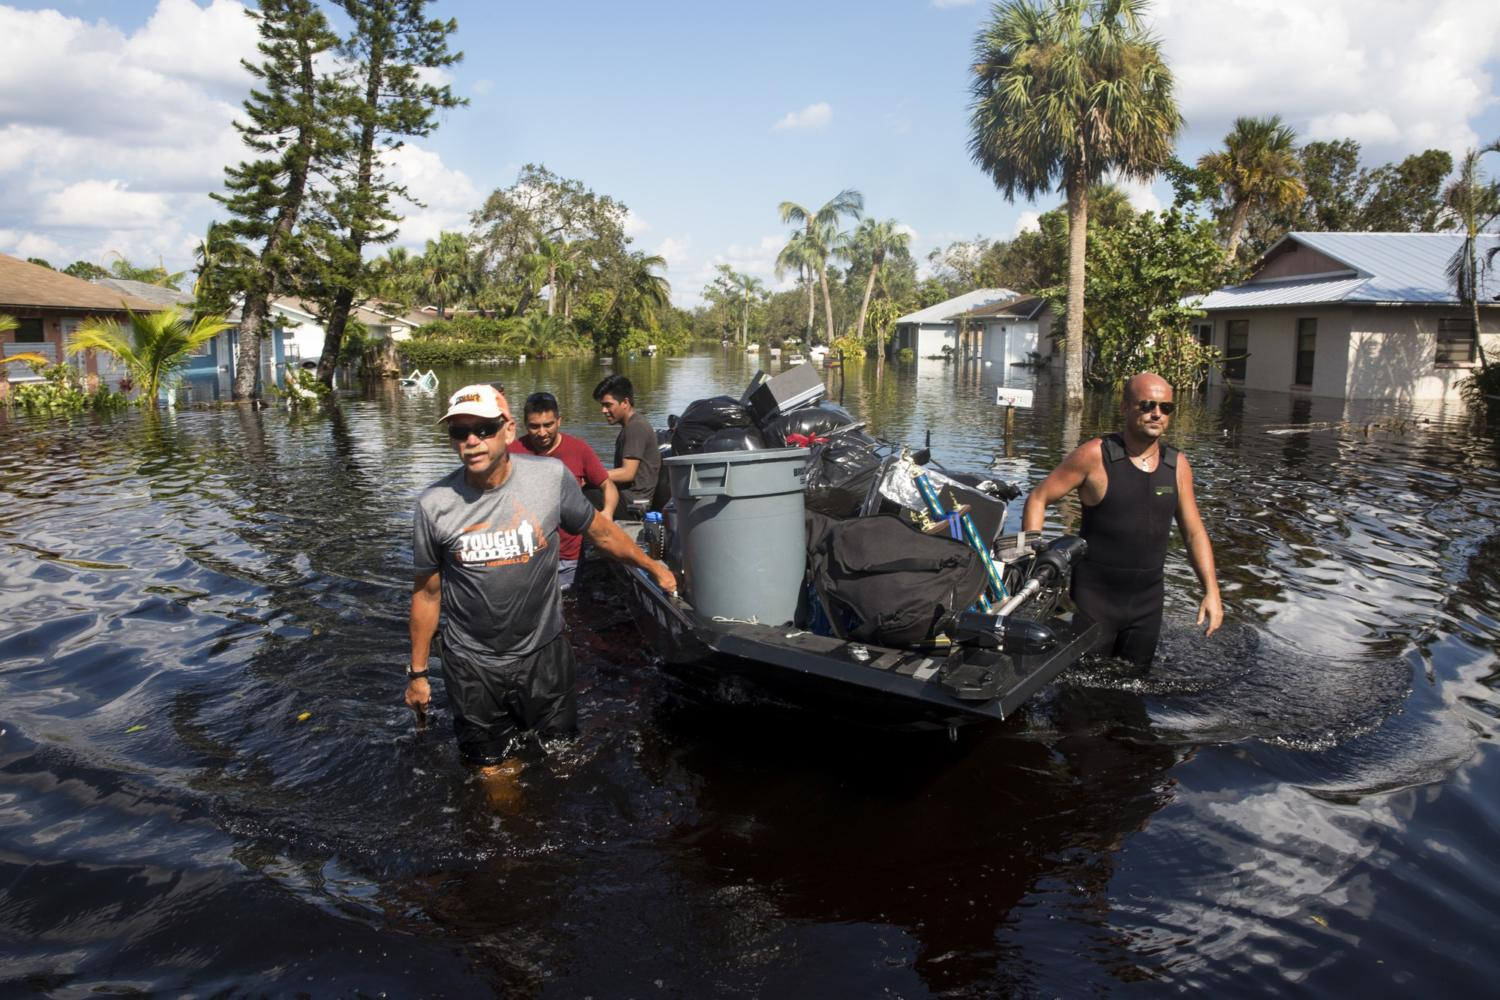 Don Manley, left, and Pedro Castellano, right, pull Manley's boat, loaded with residents' belongings, along a flooded Chapman Avenue in Bonita Springs, Fla., on Friday, Sept. 15, 2017, in the aftermath of Hurricane Irma.   (Nicole Raucheisen/Naples Daily News via AP) Photo credit: Associated Press